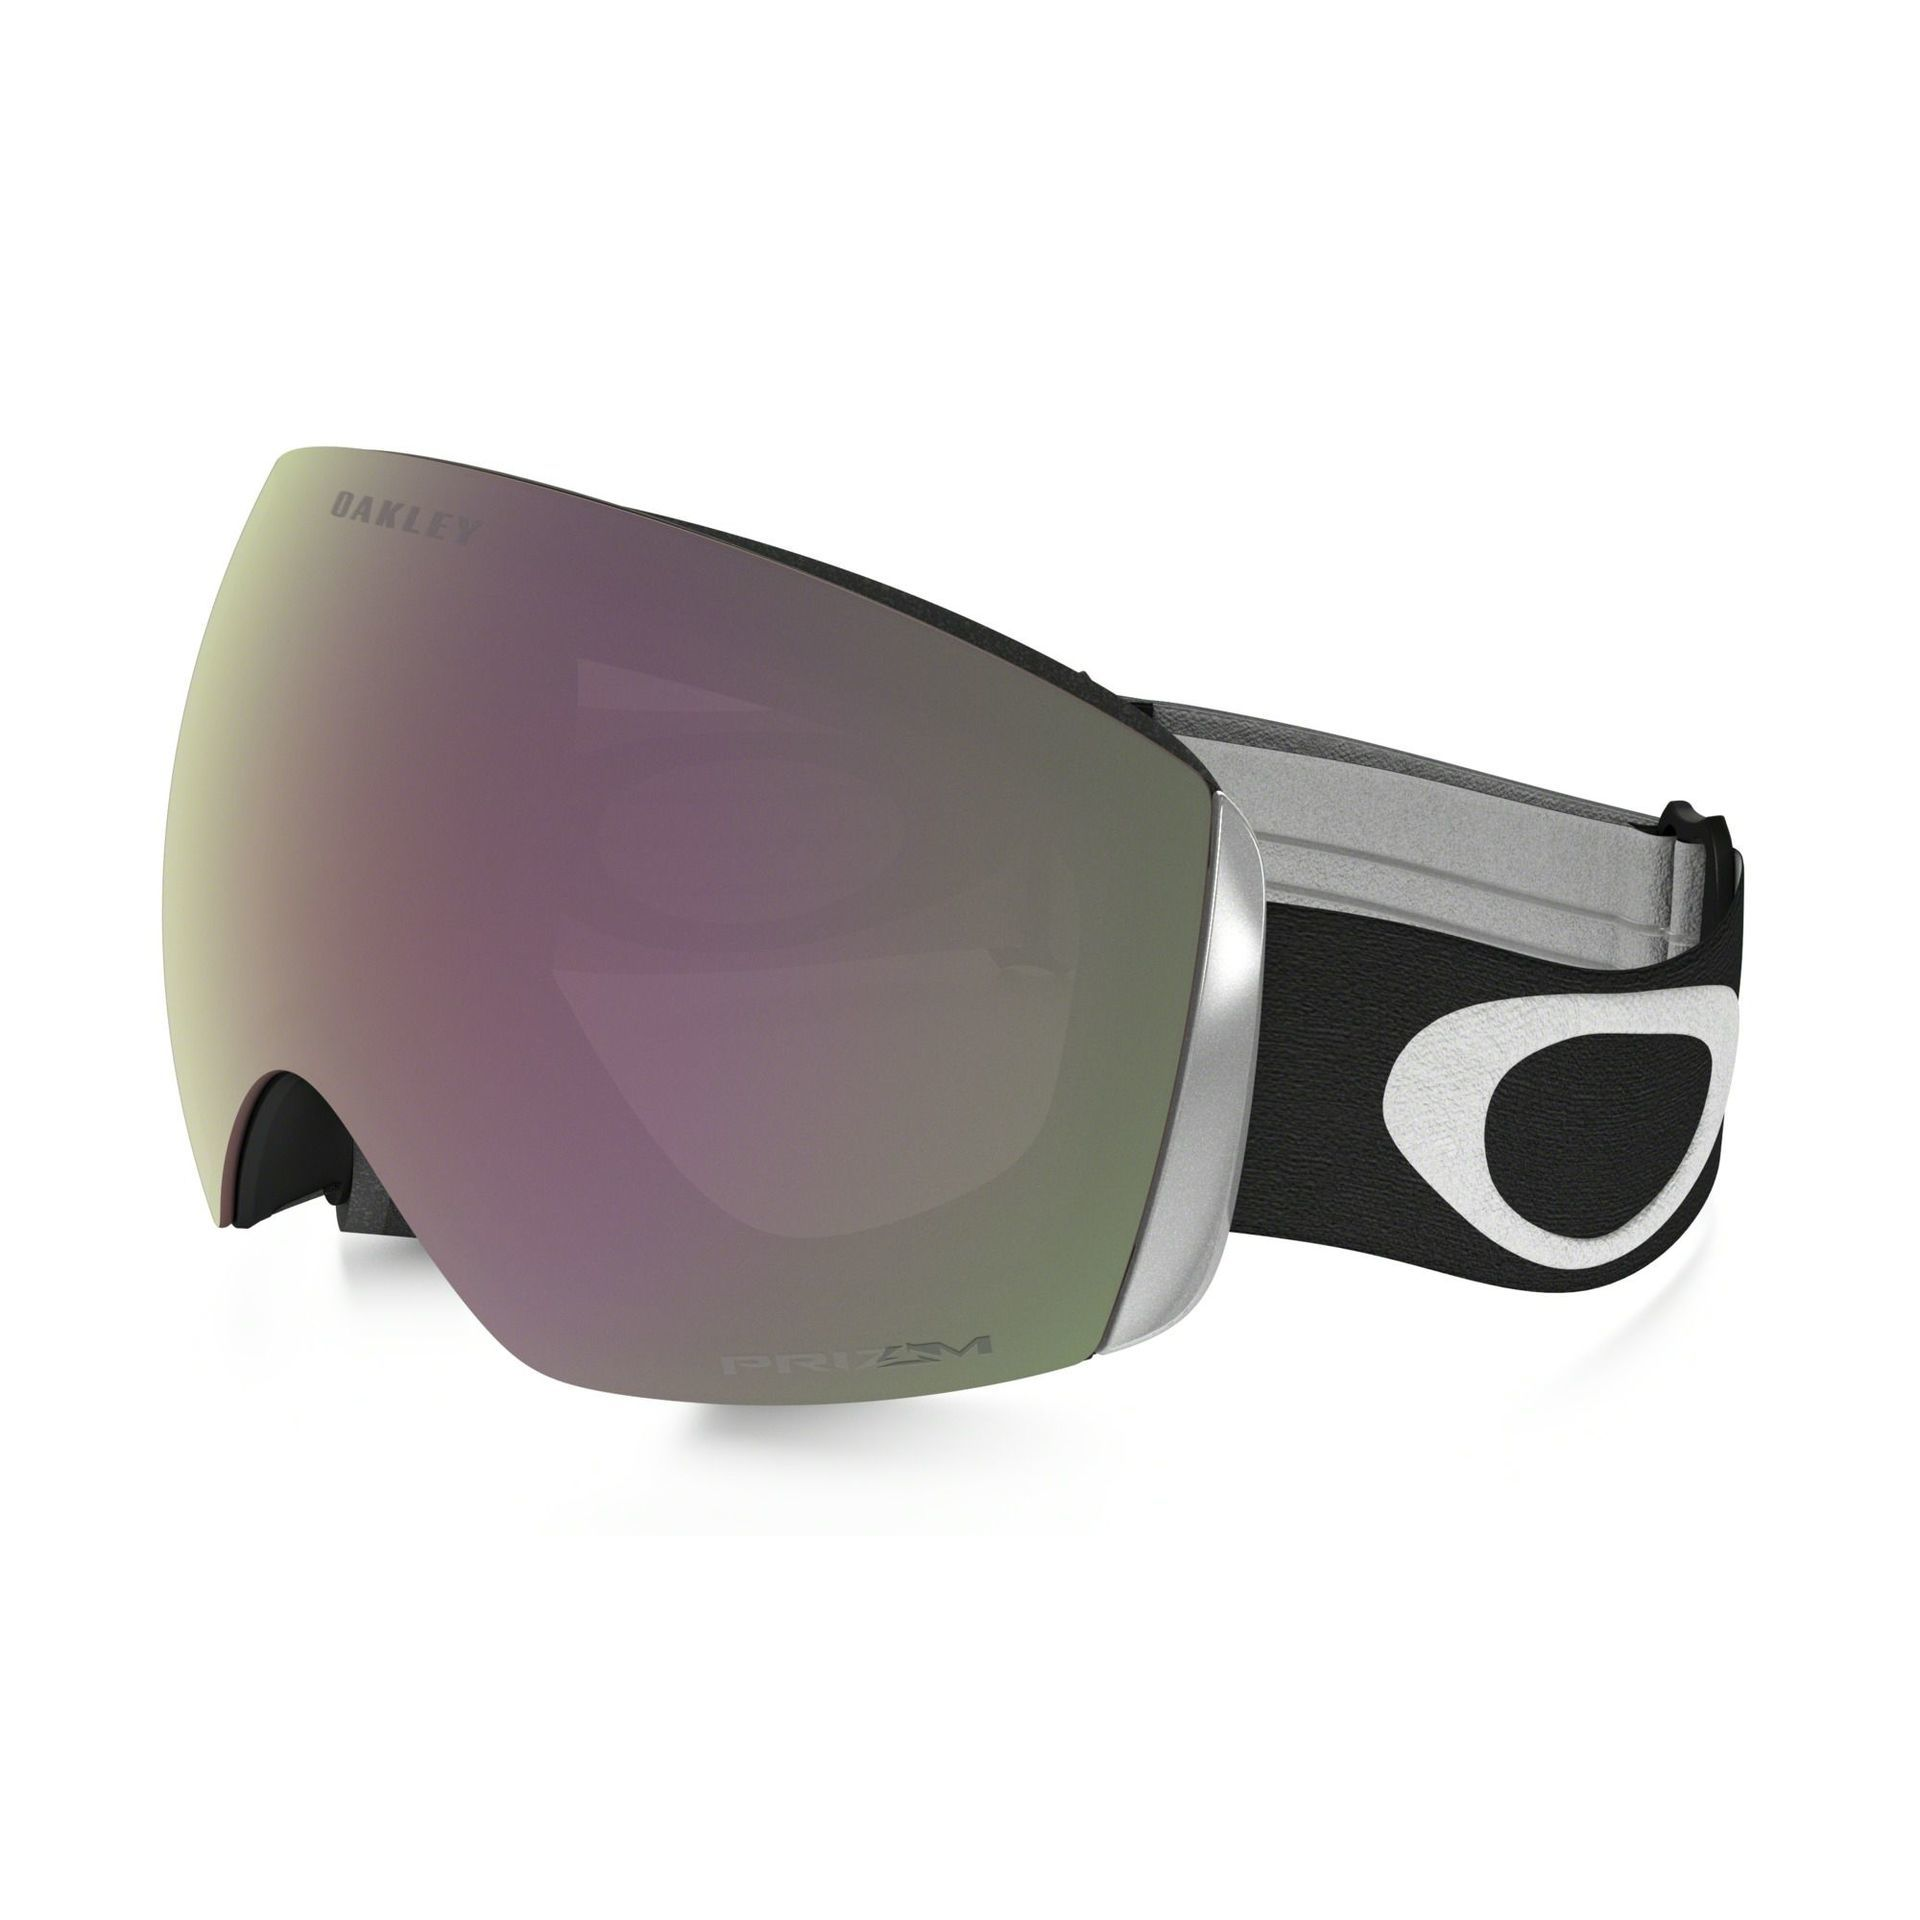 GOGLE OAKLEY FLIGHT DECK MATTE BLACK PRIZM HI PINK IRIDIUM